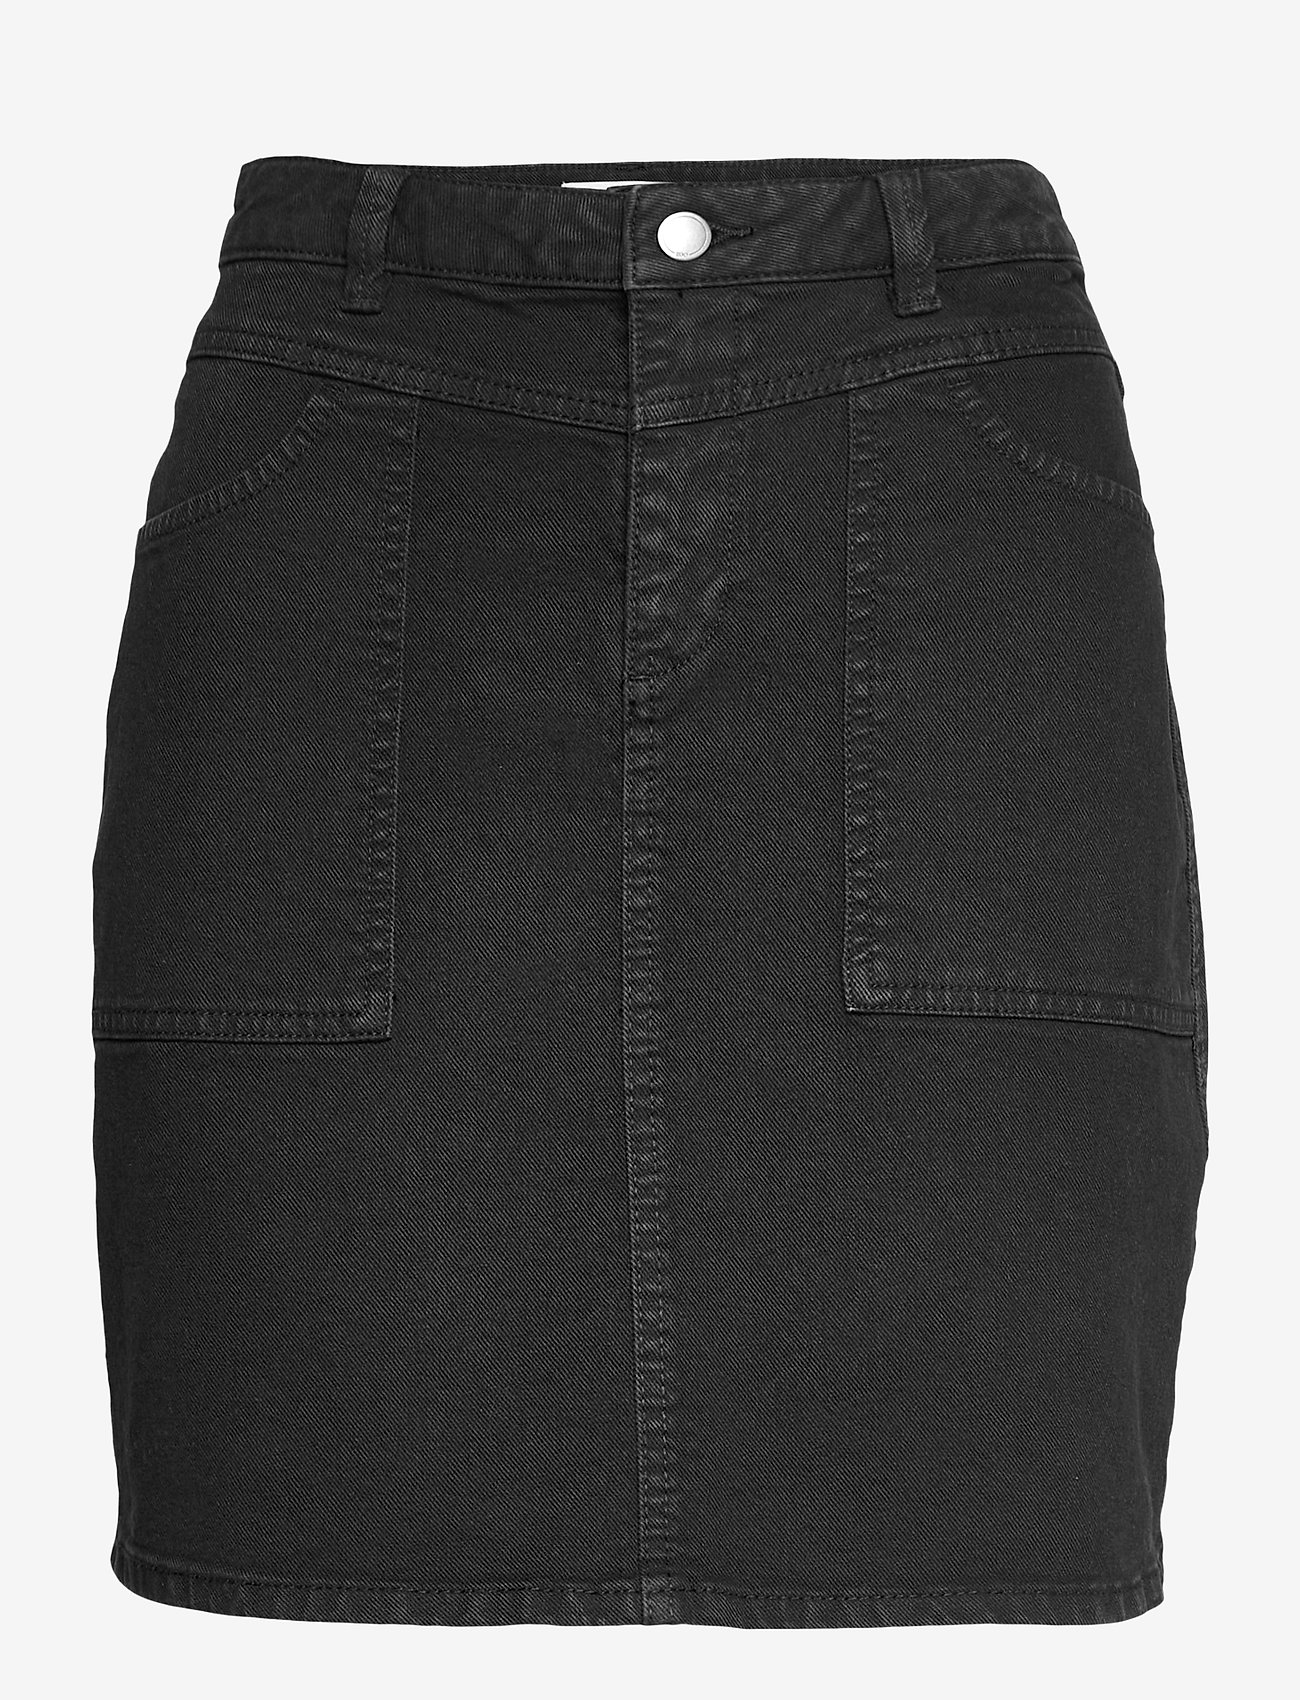 EDC by Esprit - Skirts woven - jeansröcke - black - 0